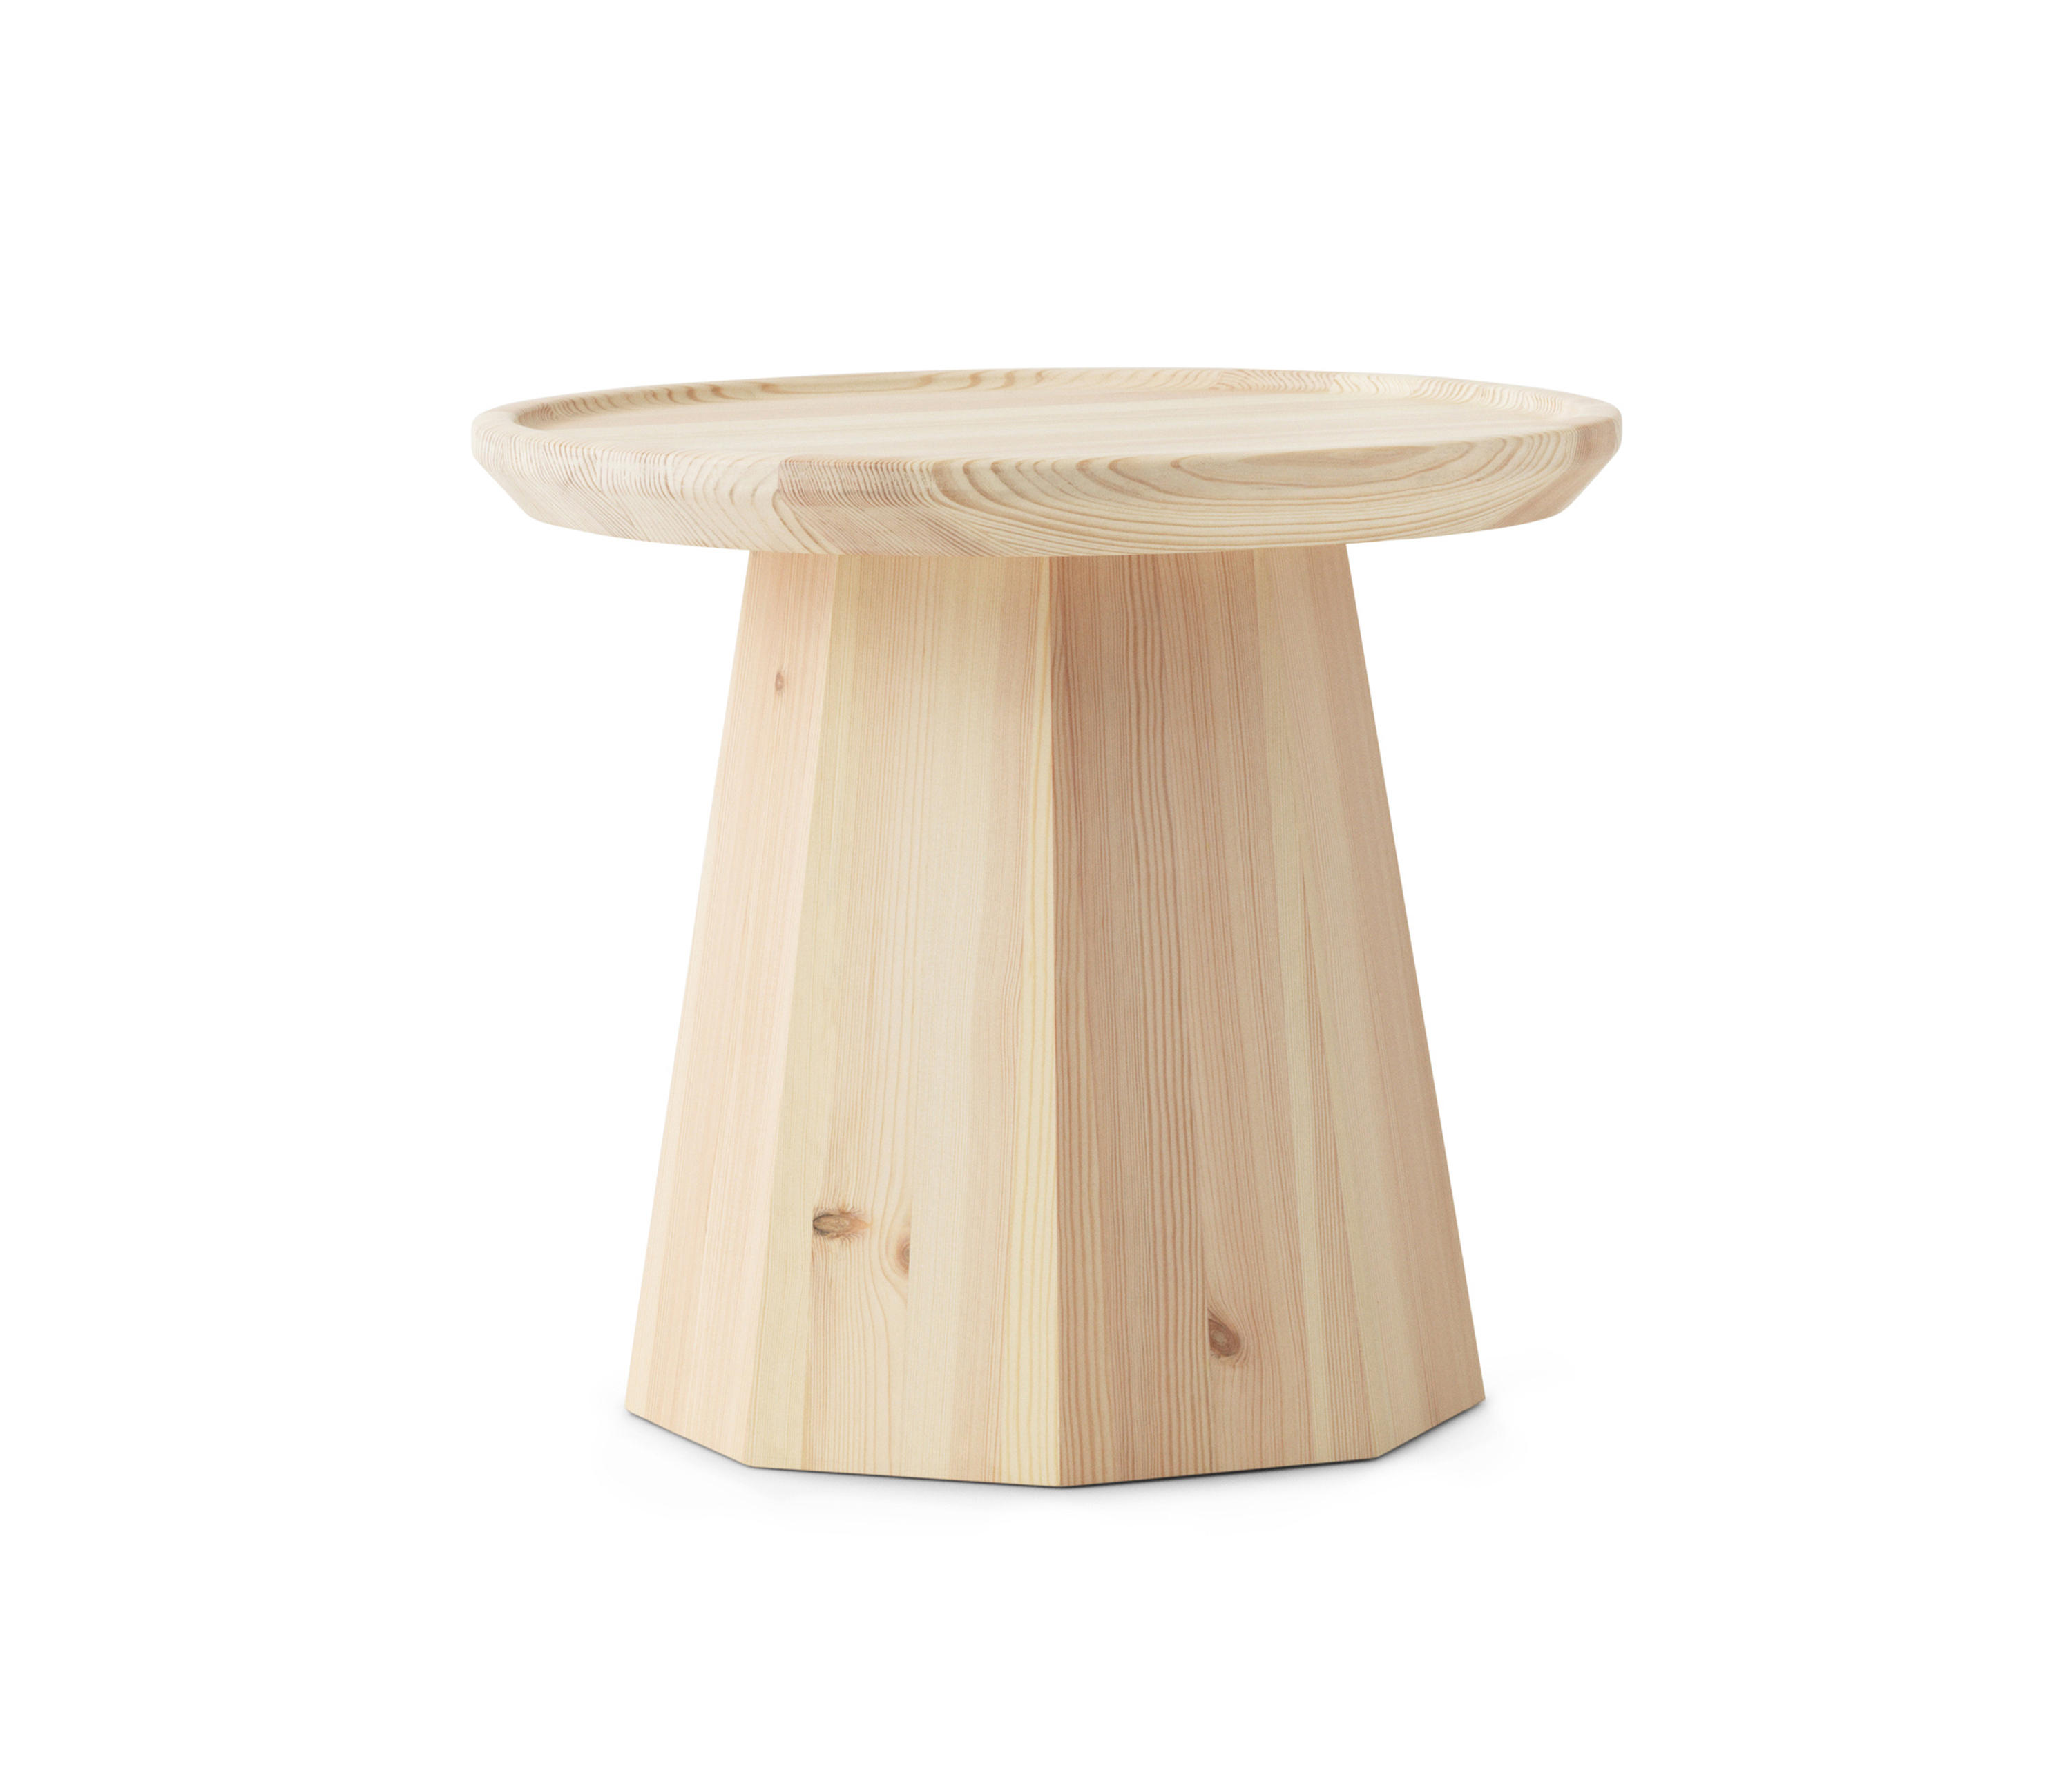 Excellent Pine Small Table Designer Furniture Architonic Unemploymentrelief Wooden Chair Designs For Living Room Unemploymentrelieforg